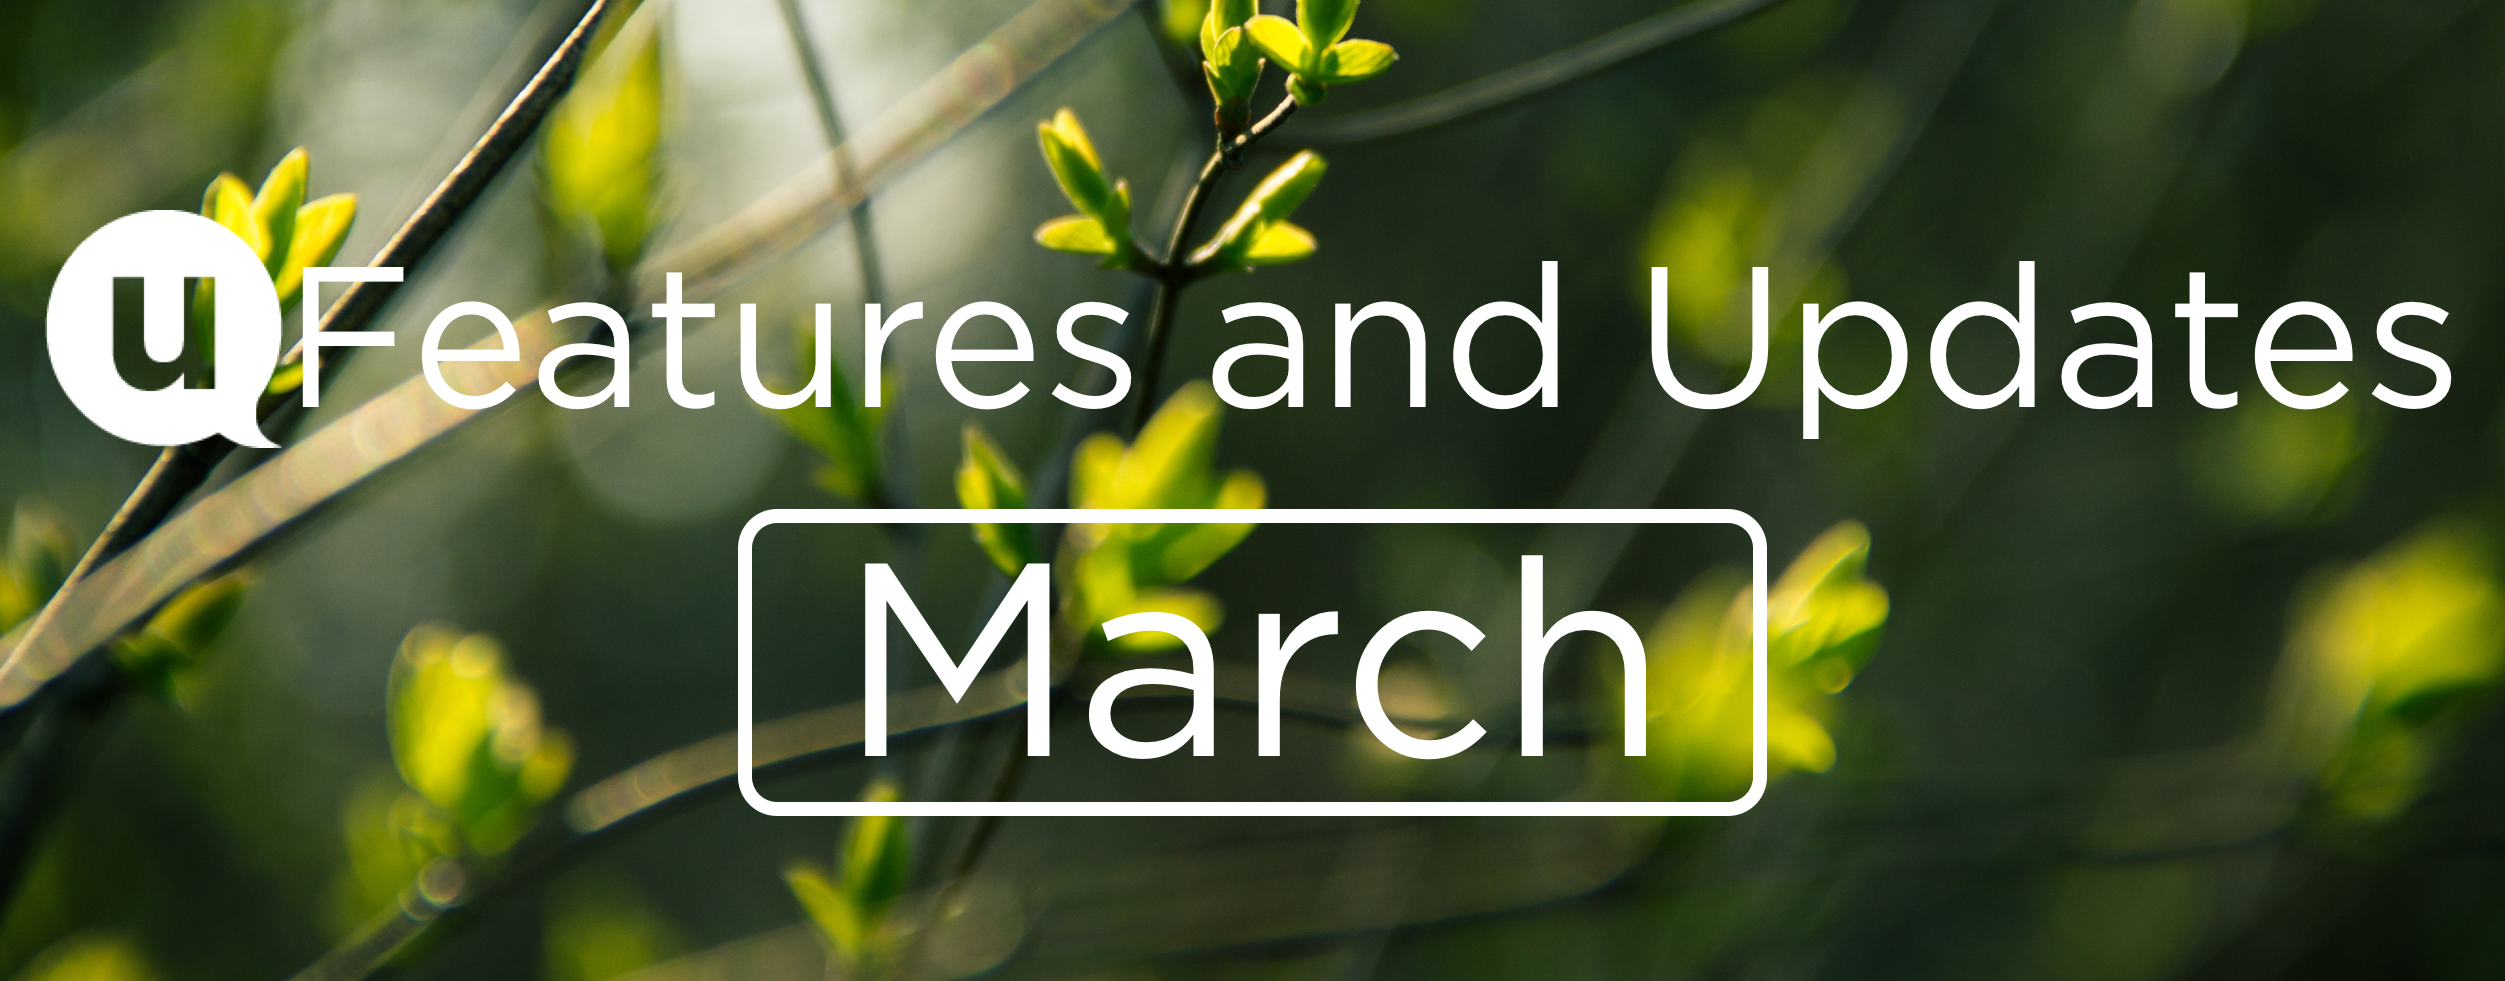 March 2019 Features and Updates